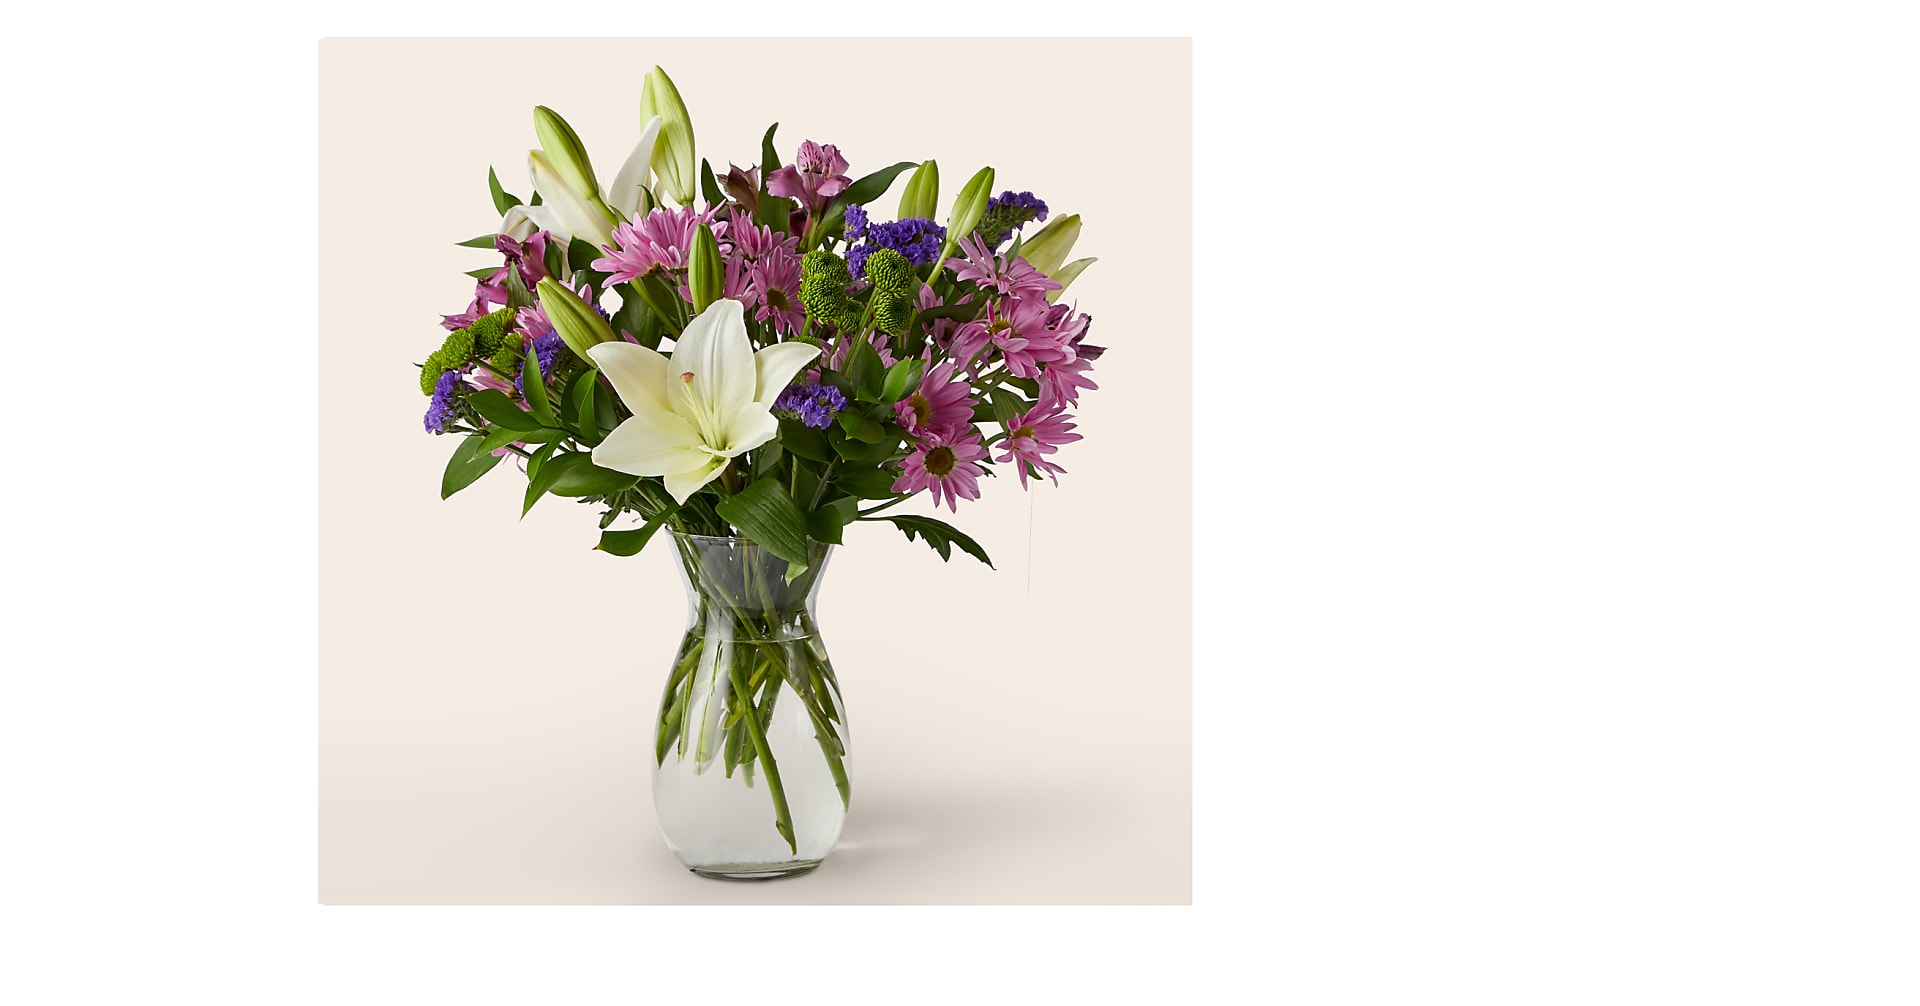 Lavender Fields Mixed Flower Bouquet with Vase - Image 1 Of 4